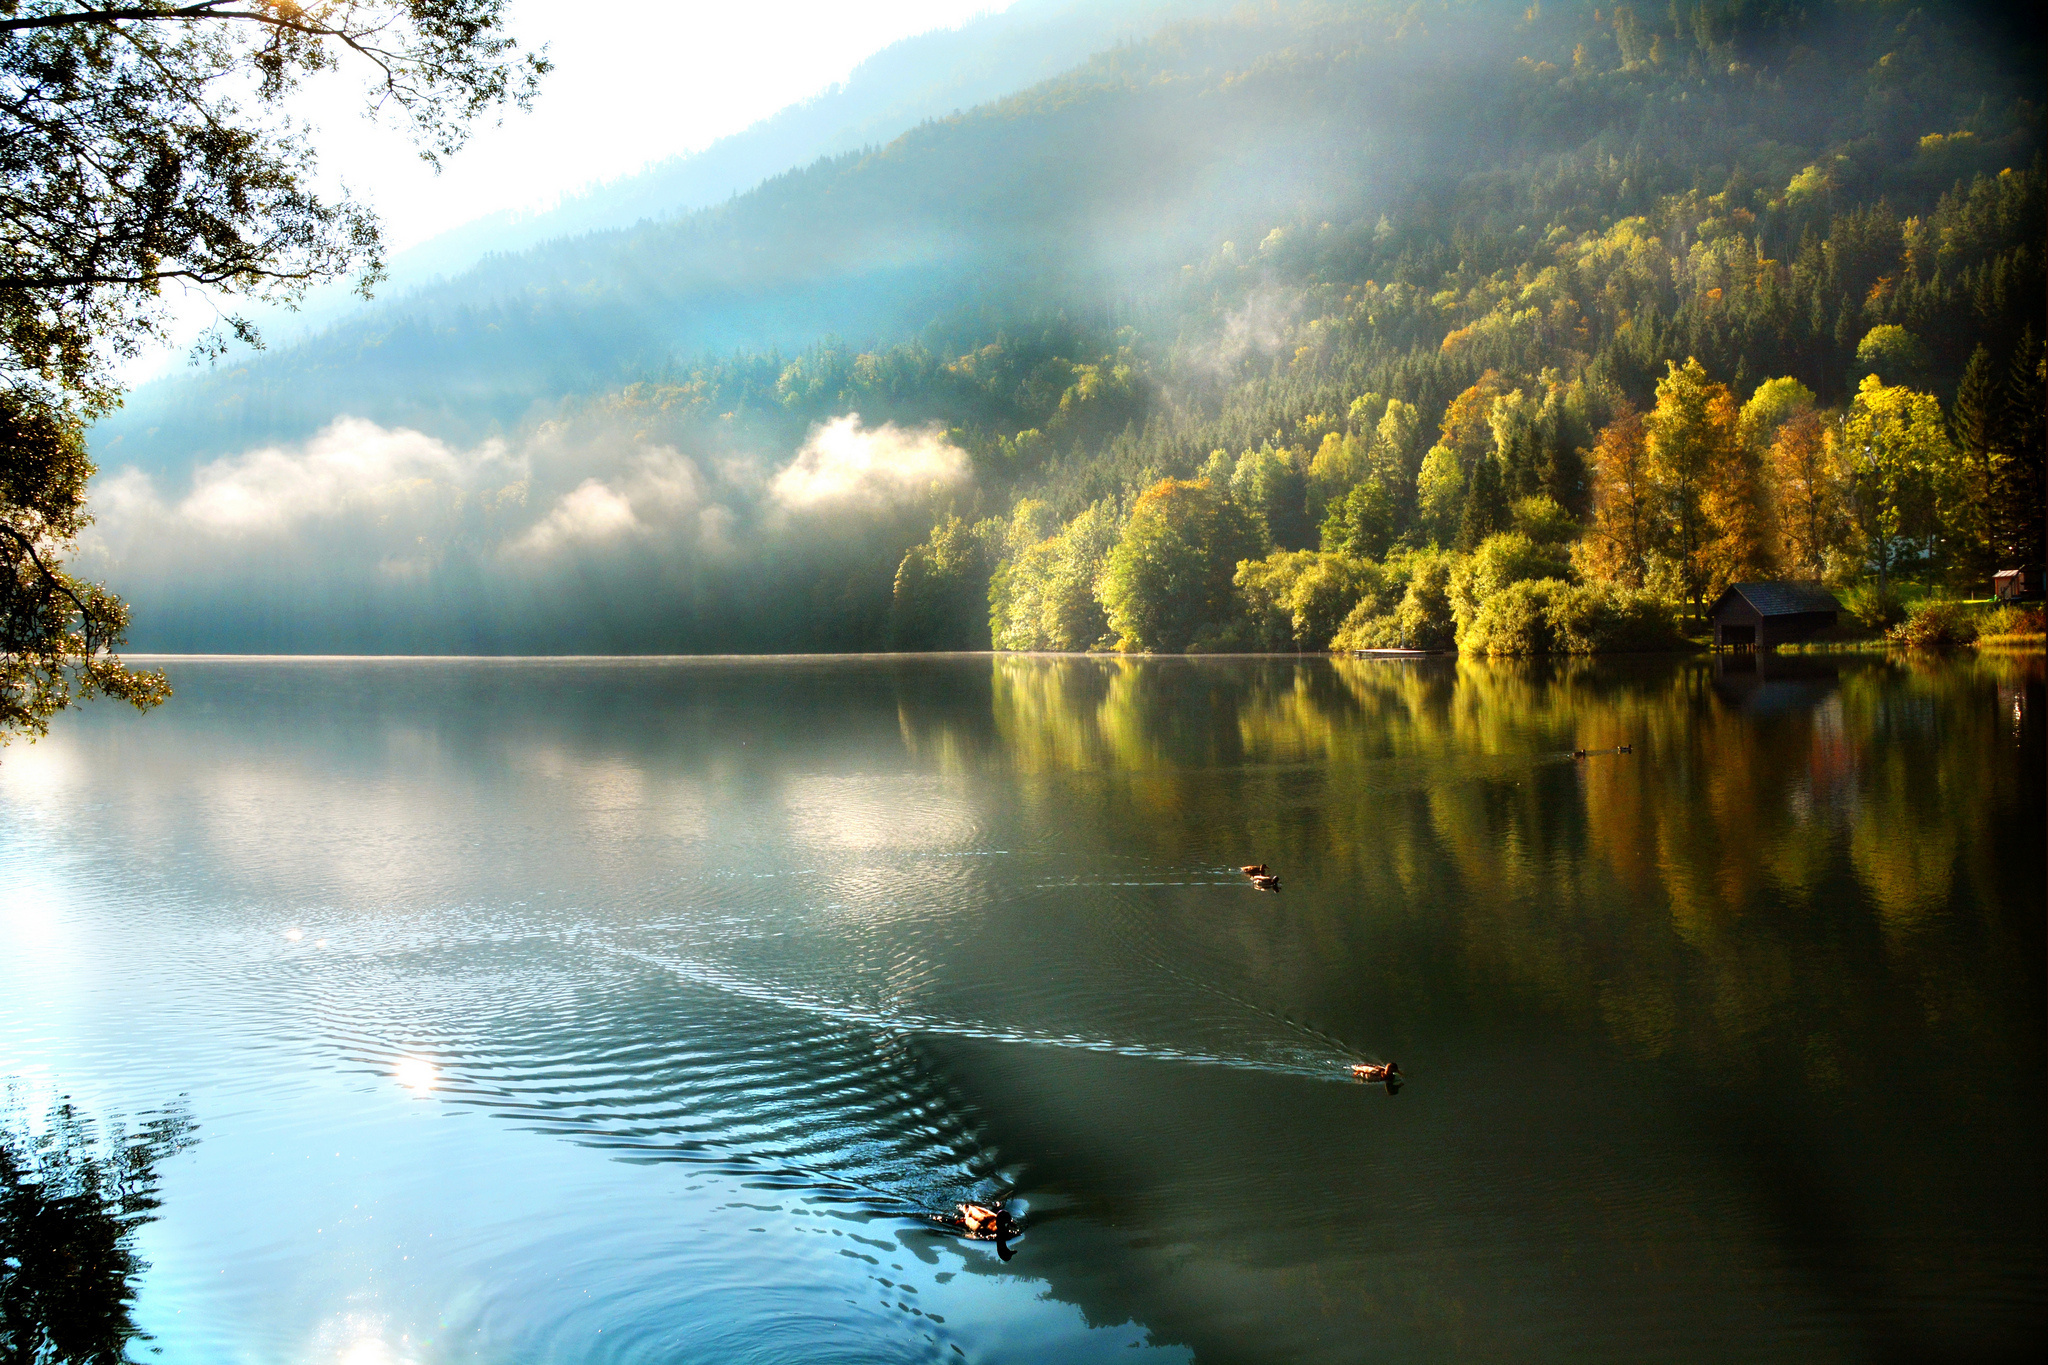 Large Size Wallpapers Of Cars Morning Mountain Lake Forest Ducks Fog Mood Autumn